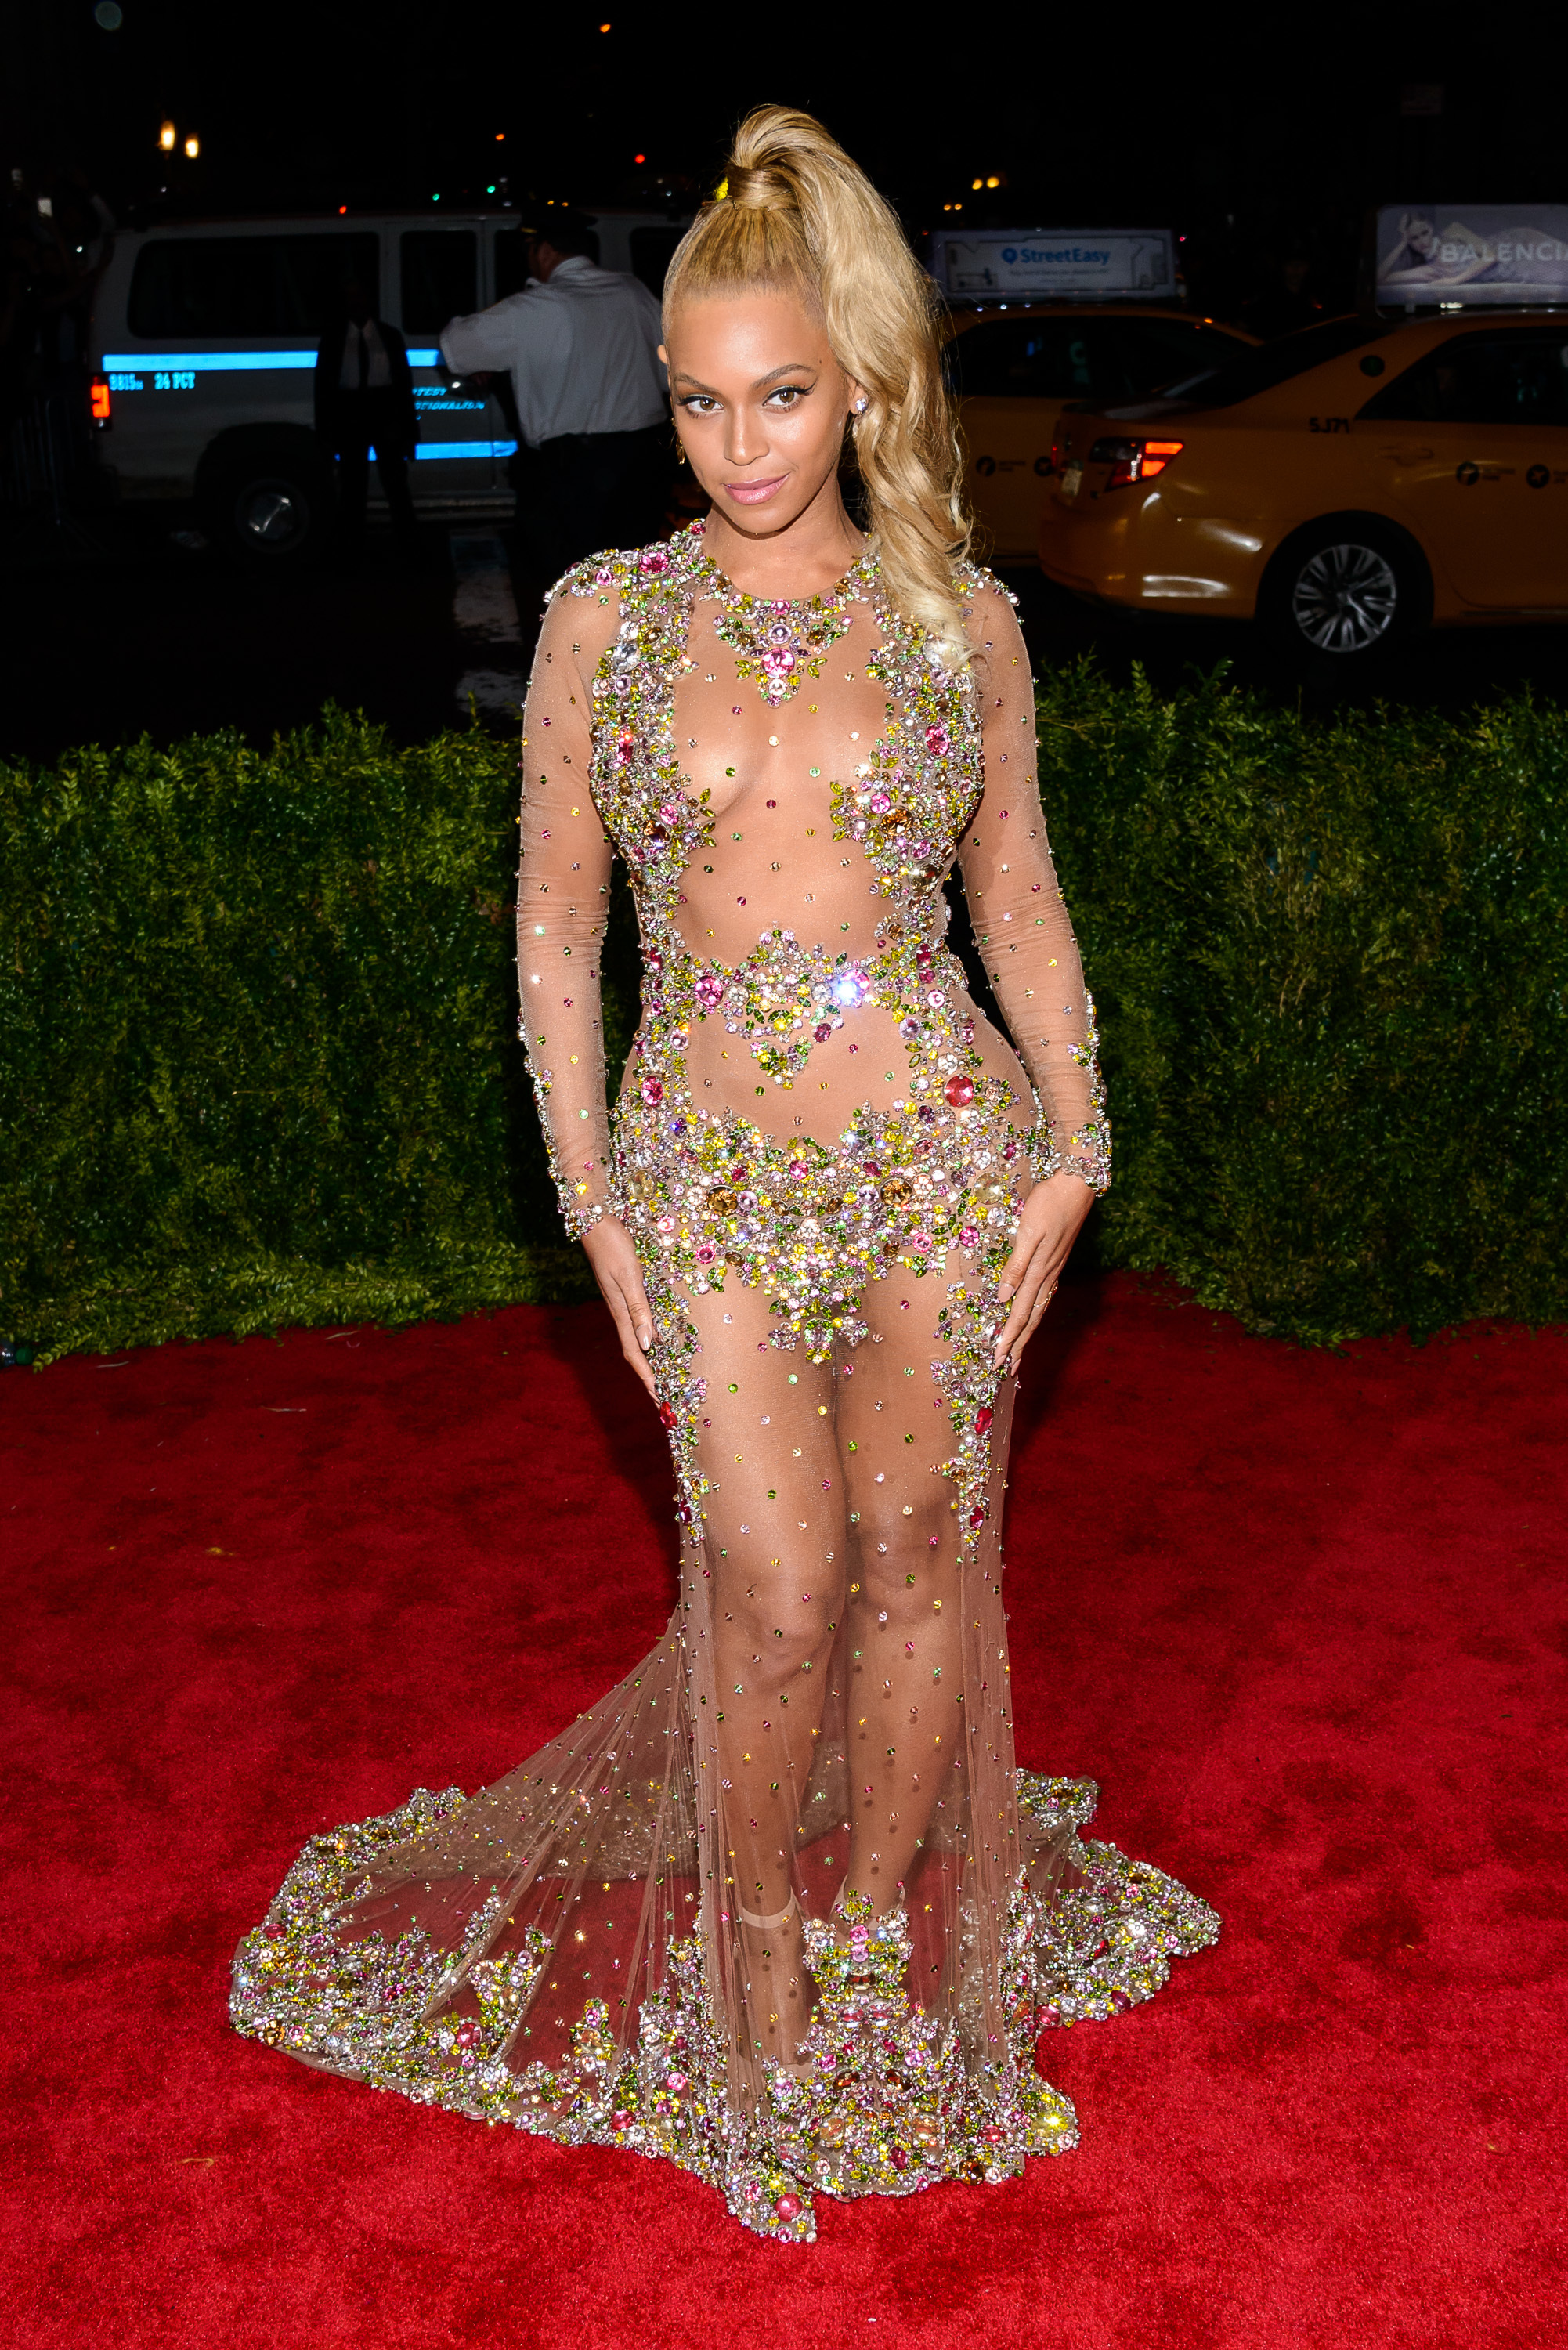 Guess how long it takes to book Beyonce